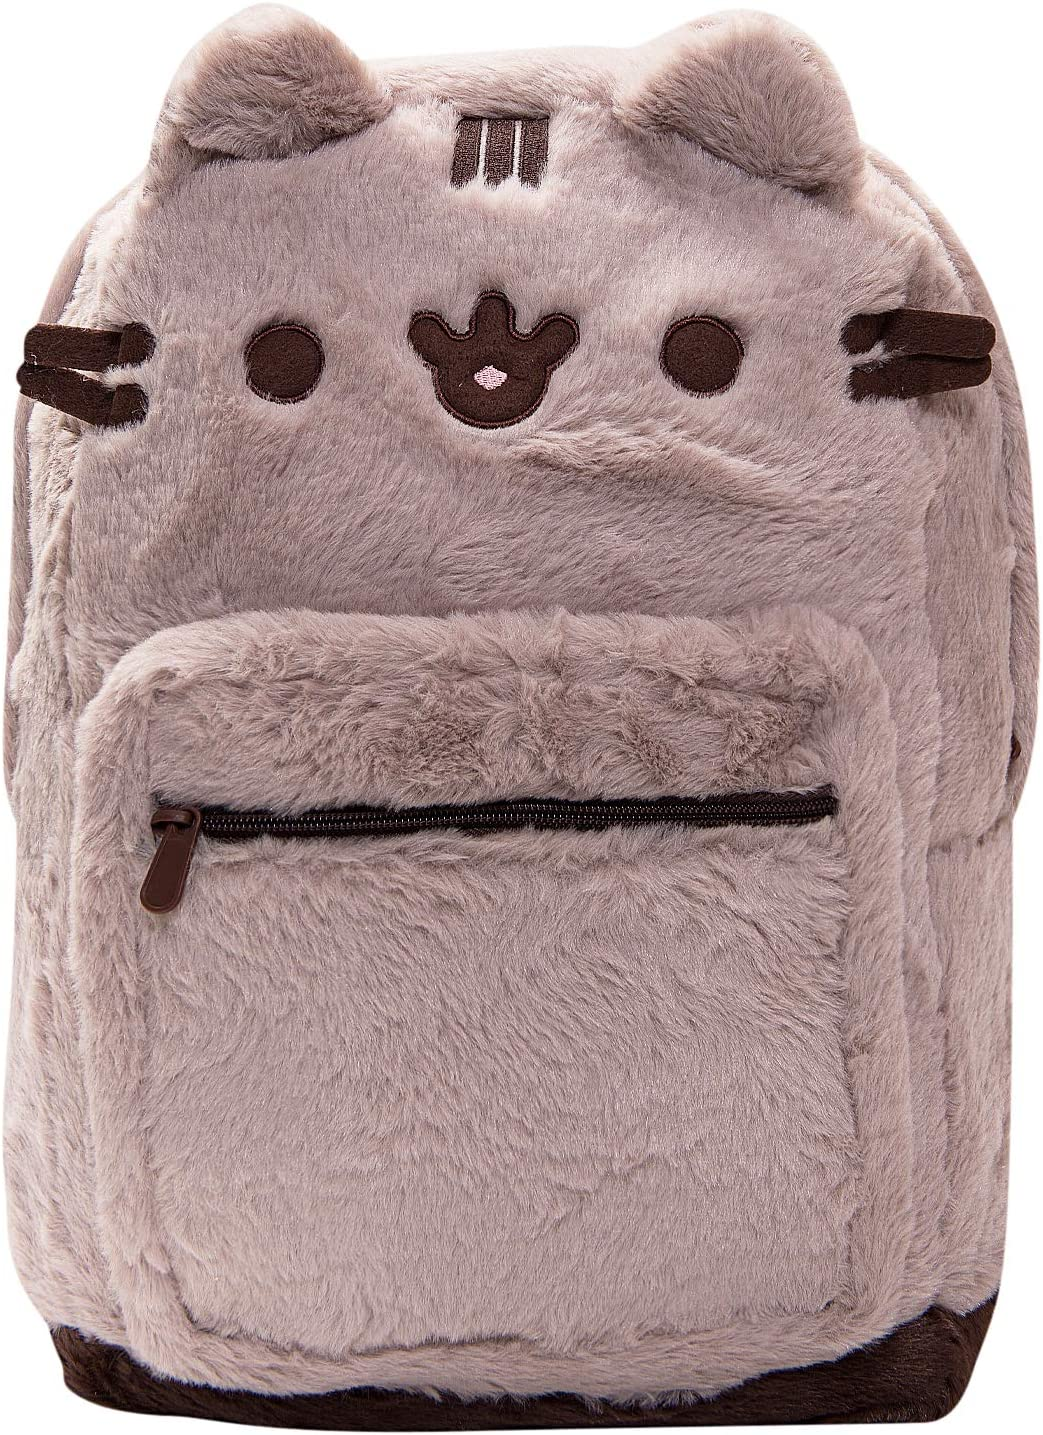 Pusheen The Cat Backpack With Cat Face for girls Fuzzy Backpack for Everyday Use - Brown Fur